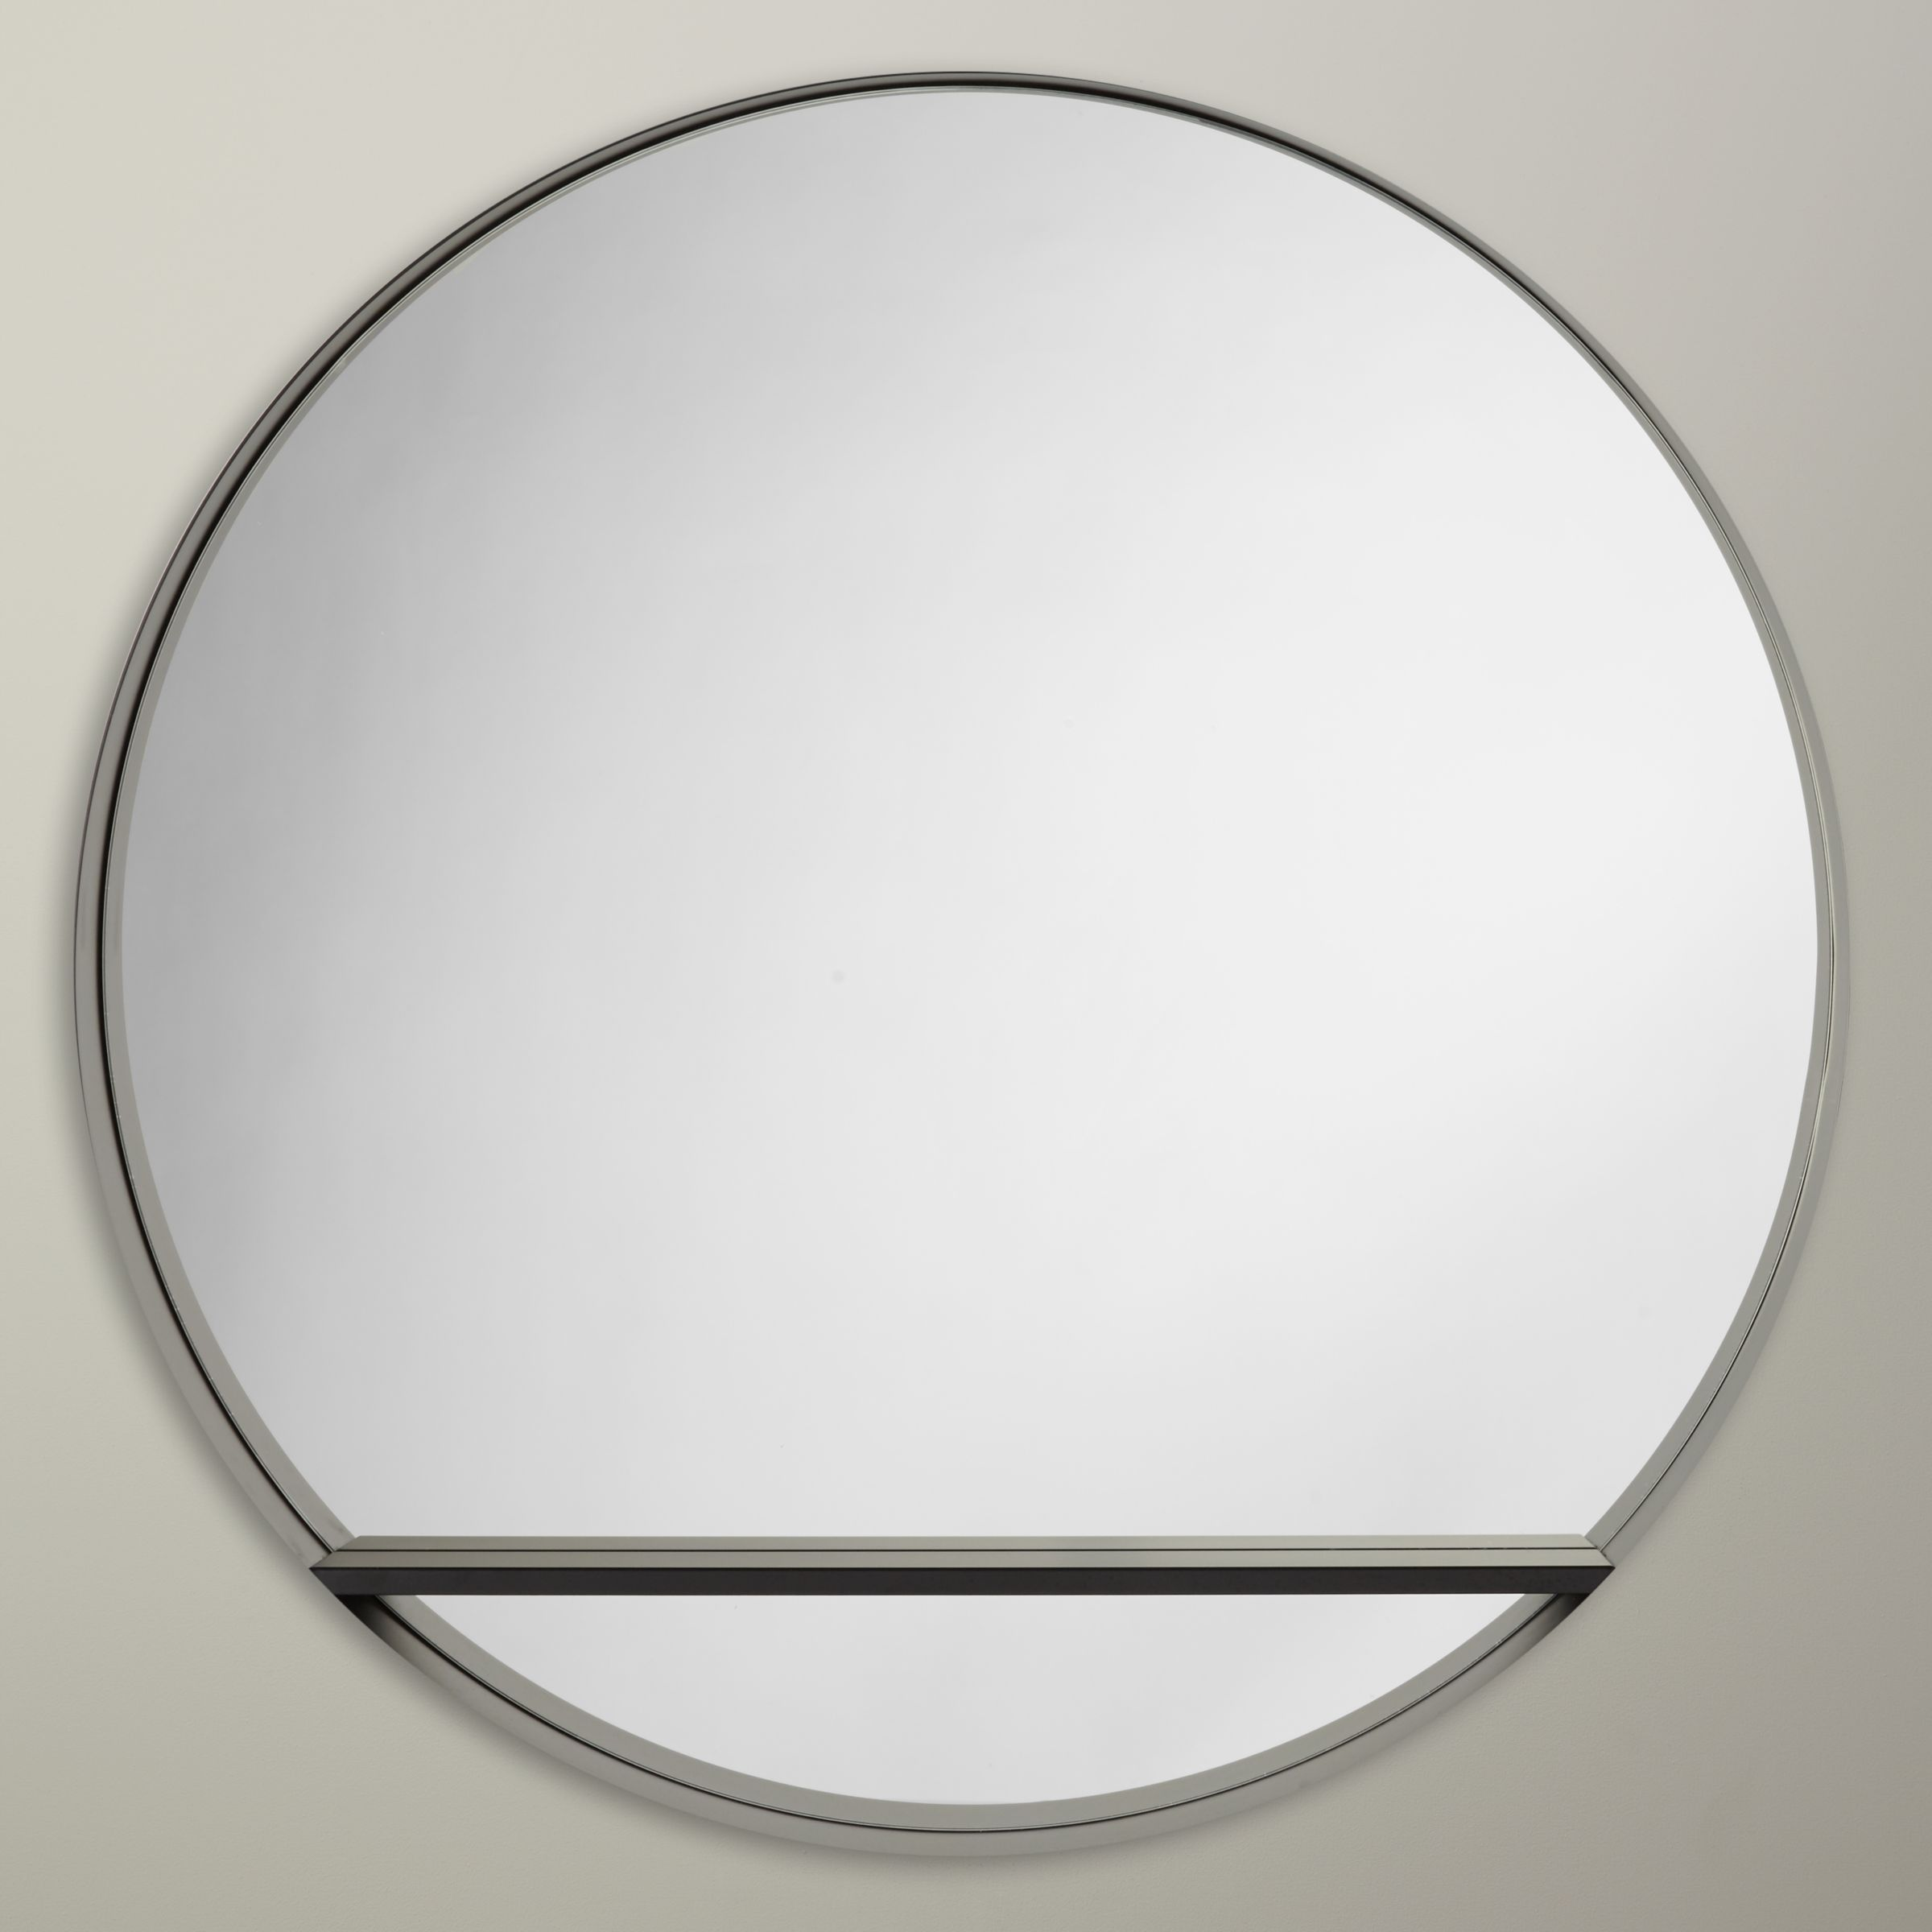 Design Project by John Lewis Design Project by John Lewis No.120 Circle Mirror With Shelf, Black